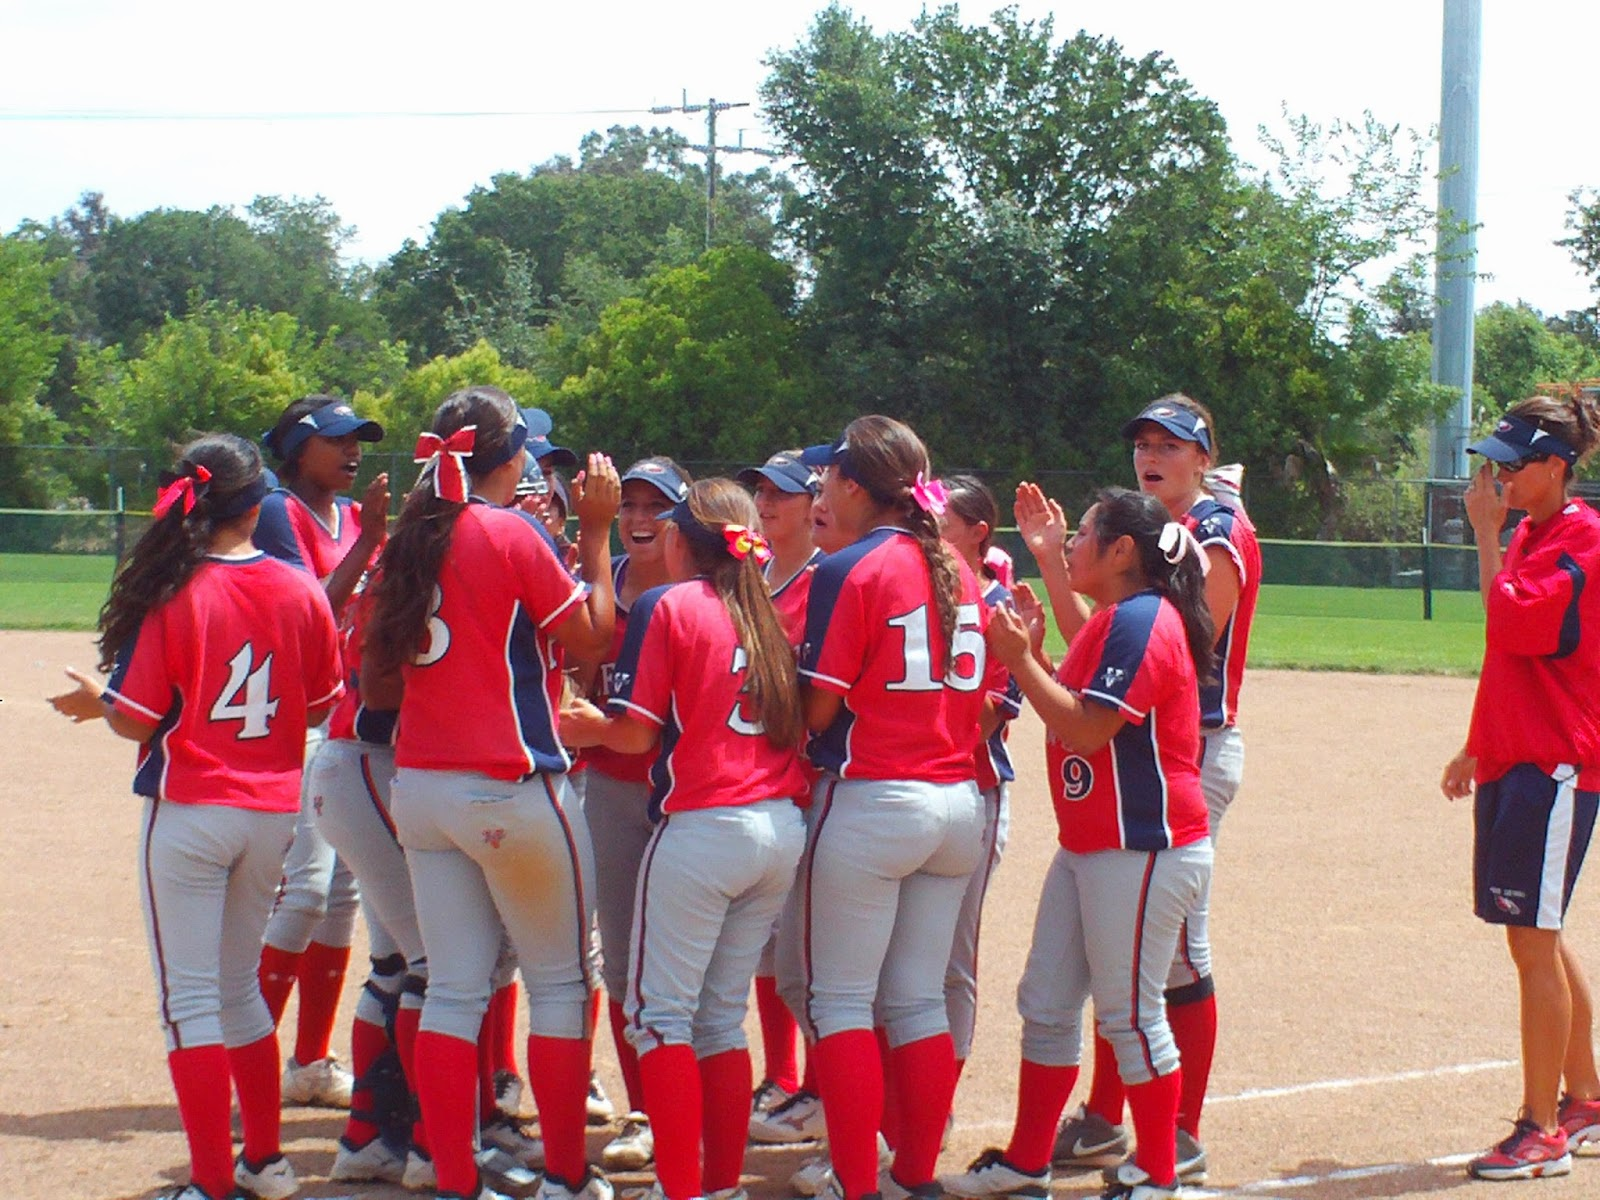 PG Upsets EG Softball in D-I Playoffs